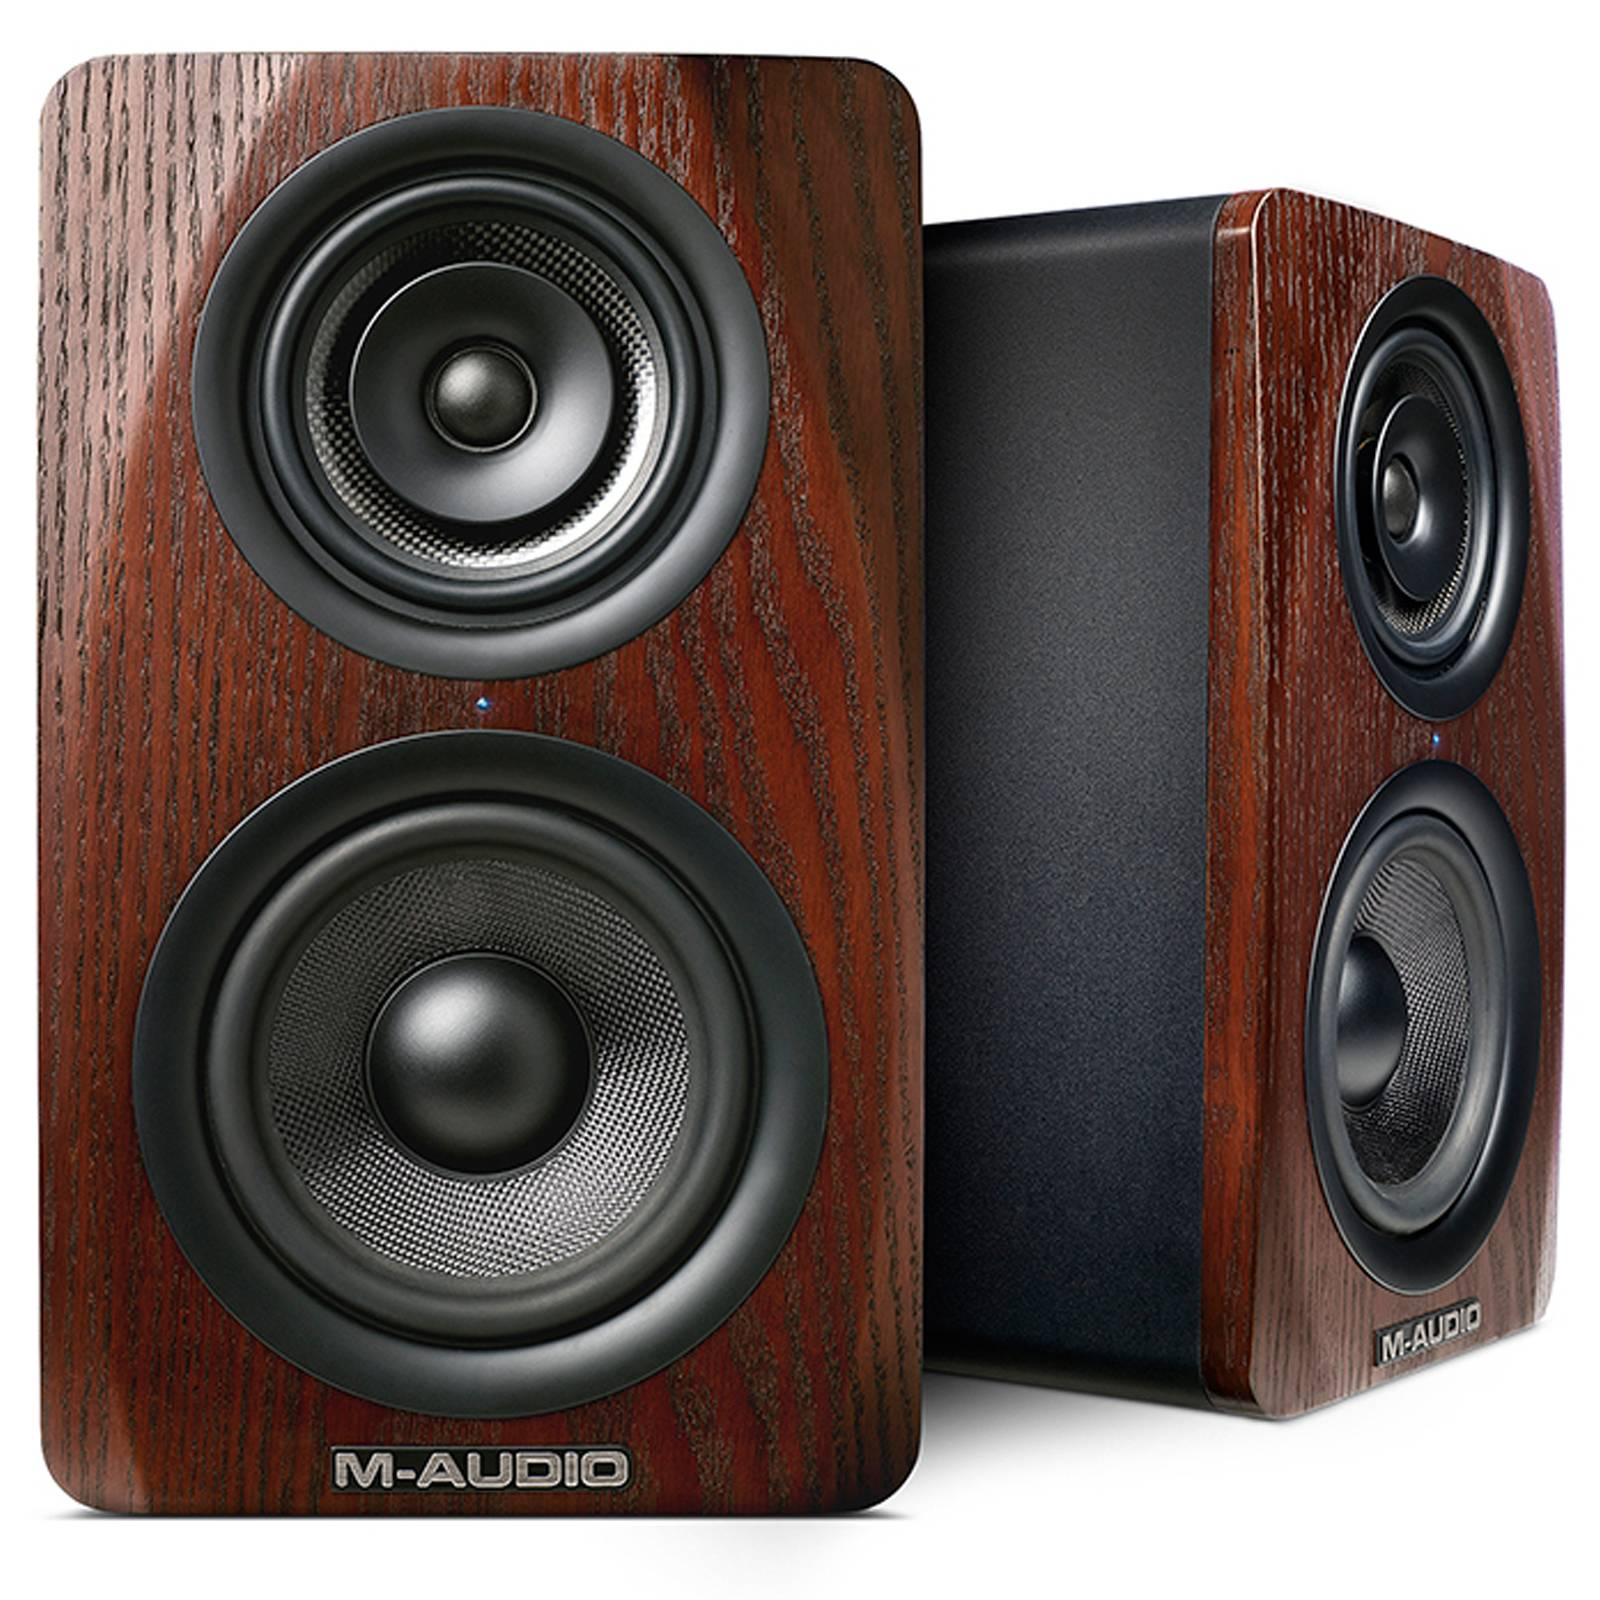 m audio m3 6 three way active studio monitor single monitoring from inta audio uk. Black Bedroom Furniture Sets. Home Design Ideas